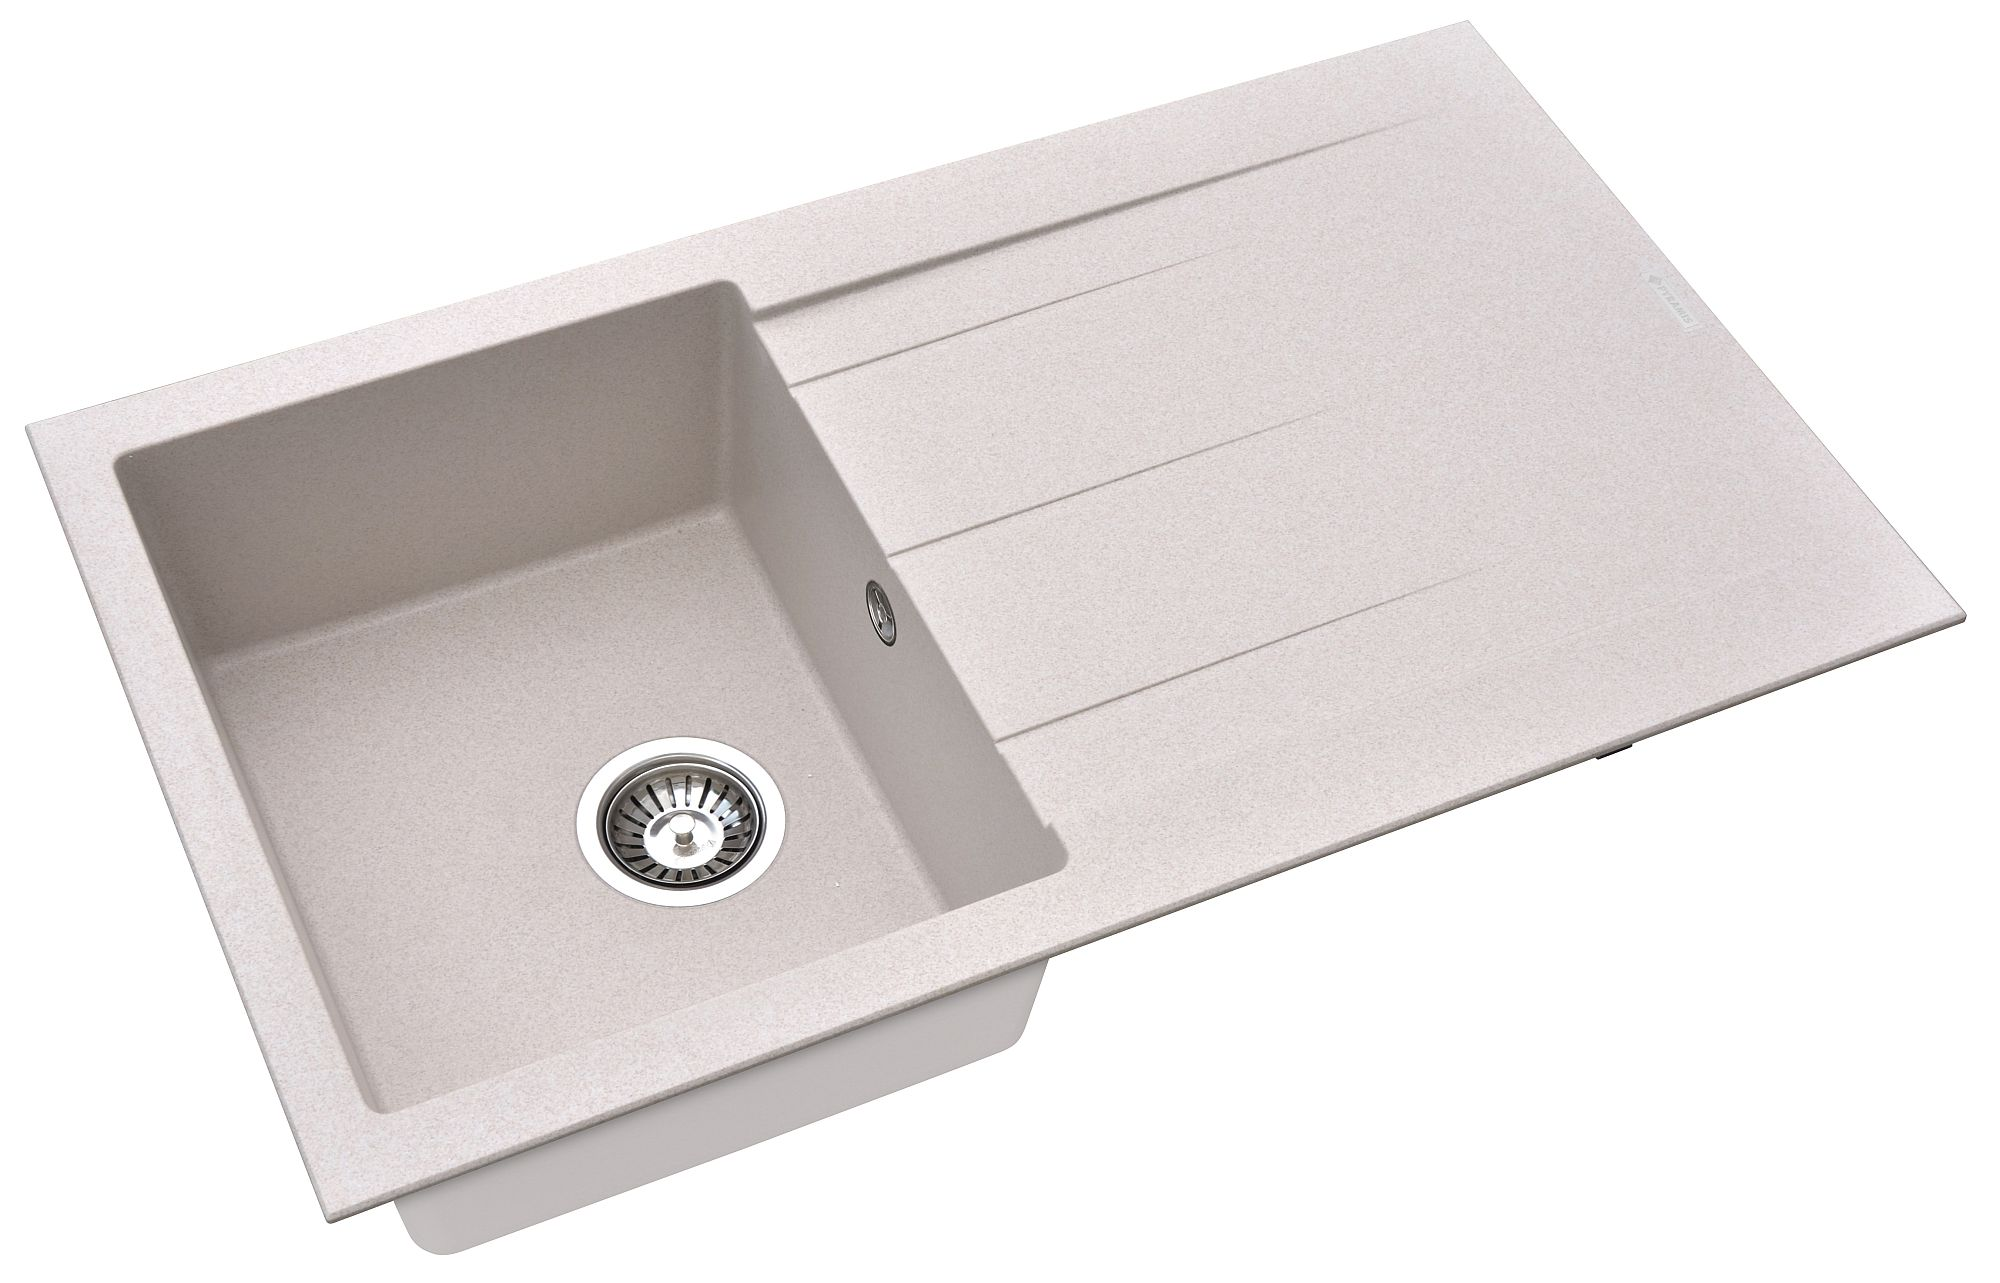 Composite Kitchen Sinks By Pyramis